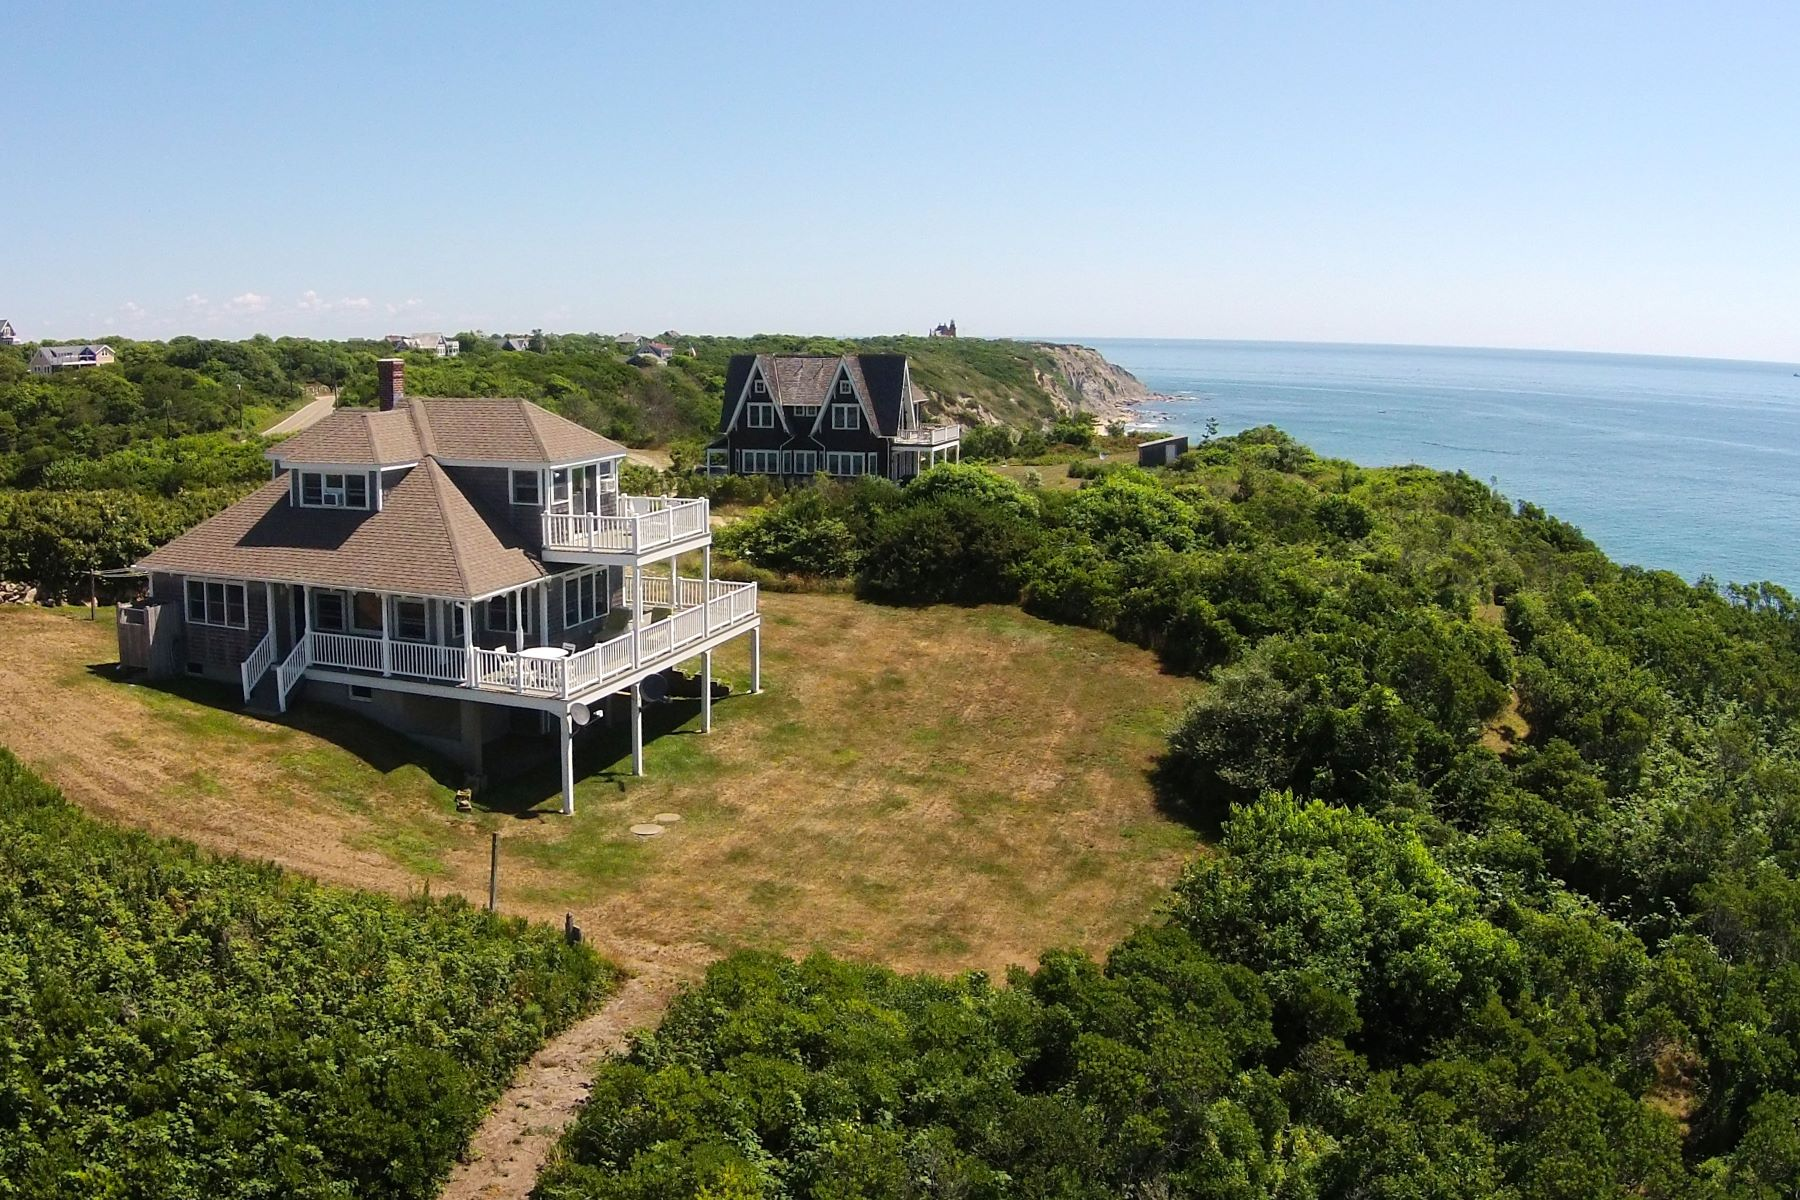 Single Family Home for Sale at Mohegan Bluff Drama 800 Mohegan Trail Block Island, Rhode Island, 02807 United States